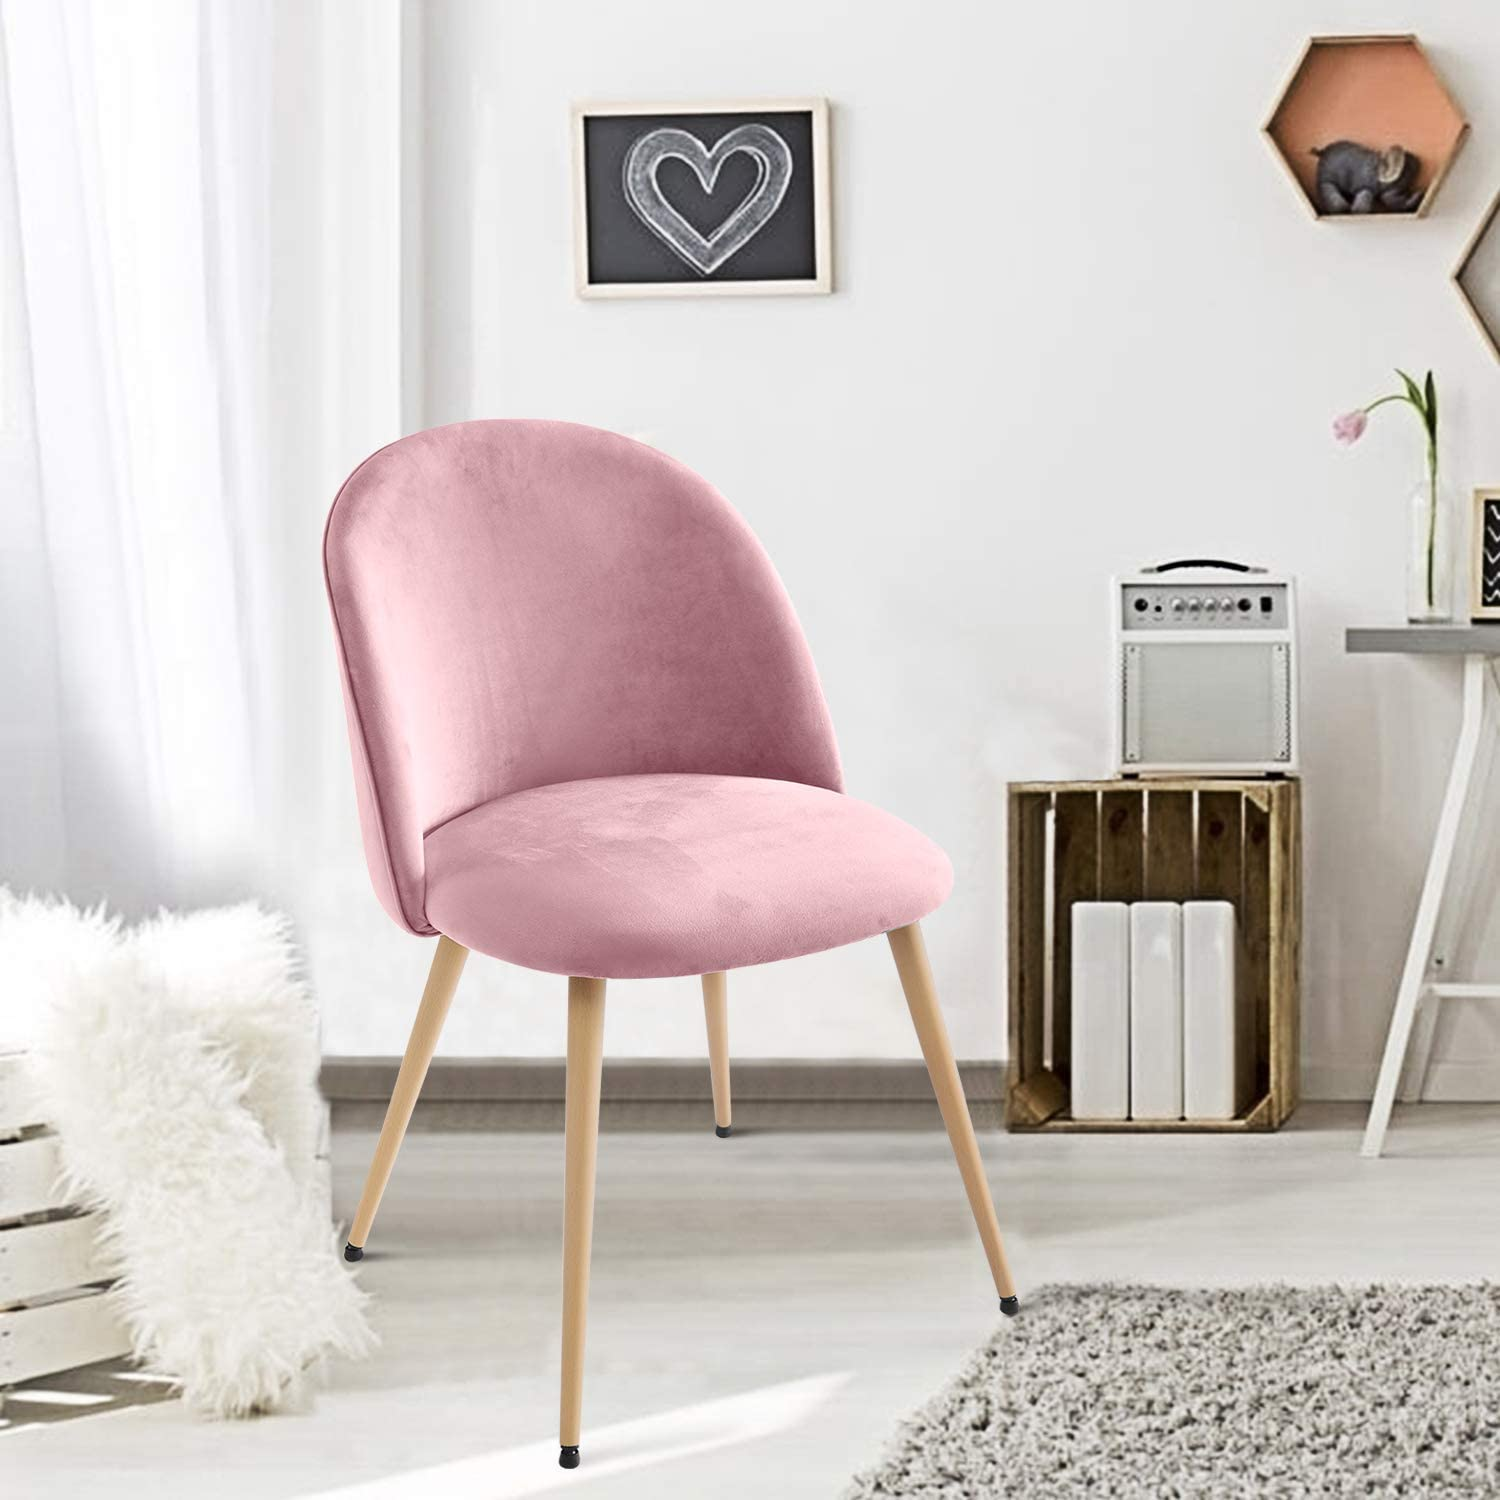 Topever Dining Chairs Velvet Fabric Thicker Soft Backrest&Cushion Upholstered Chair for Dining Living Room Bedroom Home Office Lounge Chair Set of 1 Pink